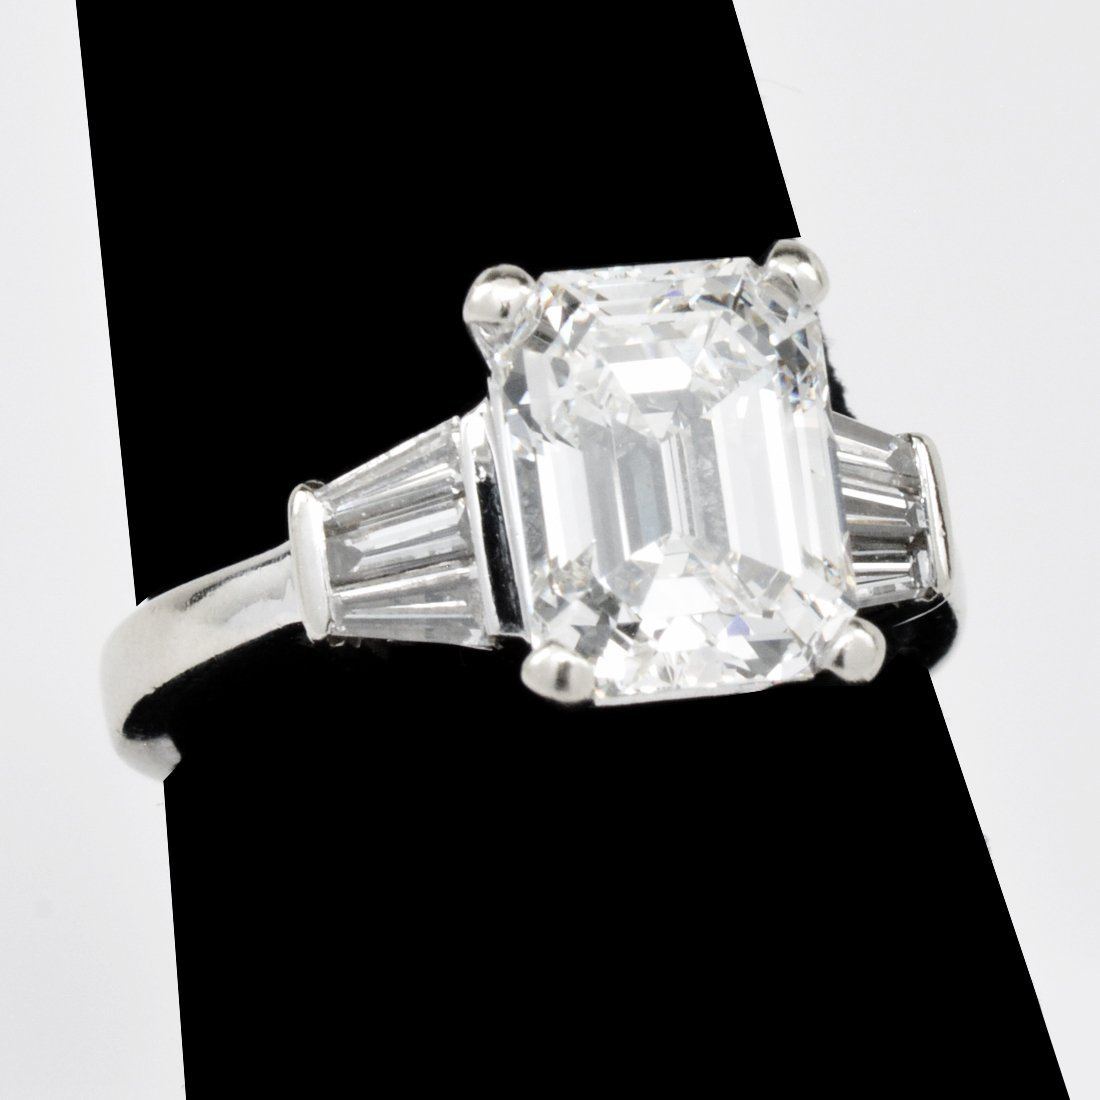 3.21 Carat Emerald-Cut Diamond Ring with GIA